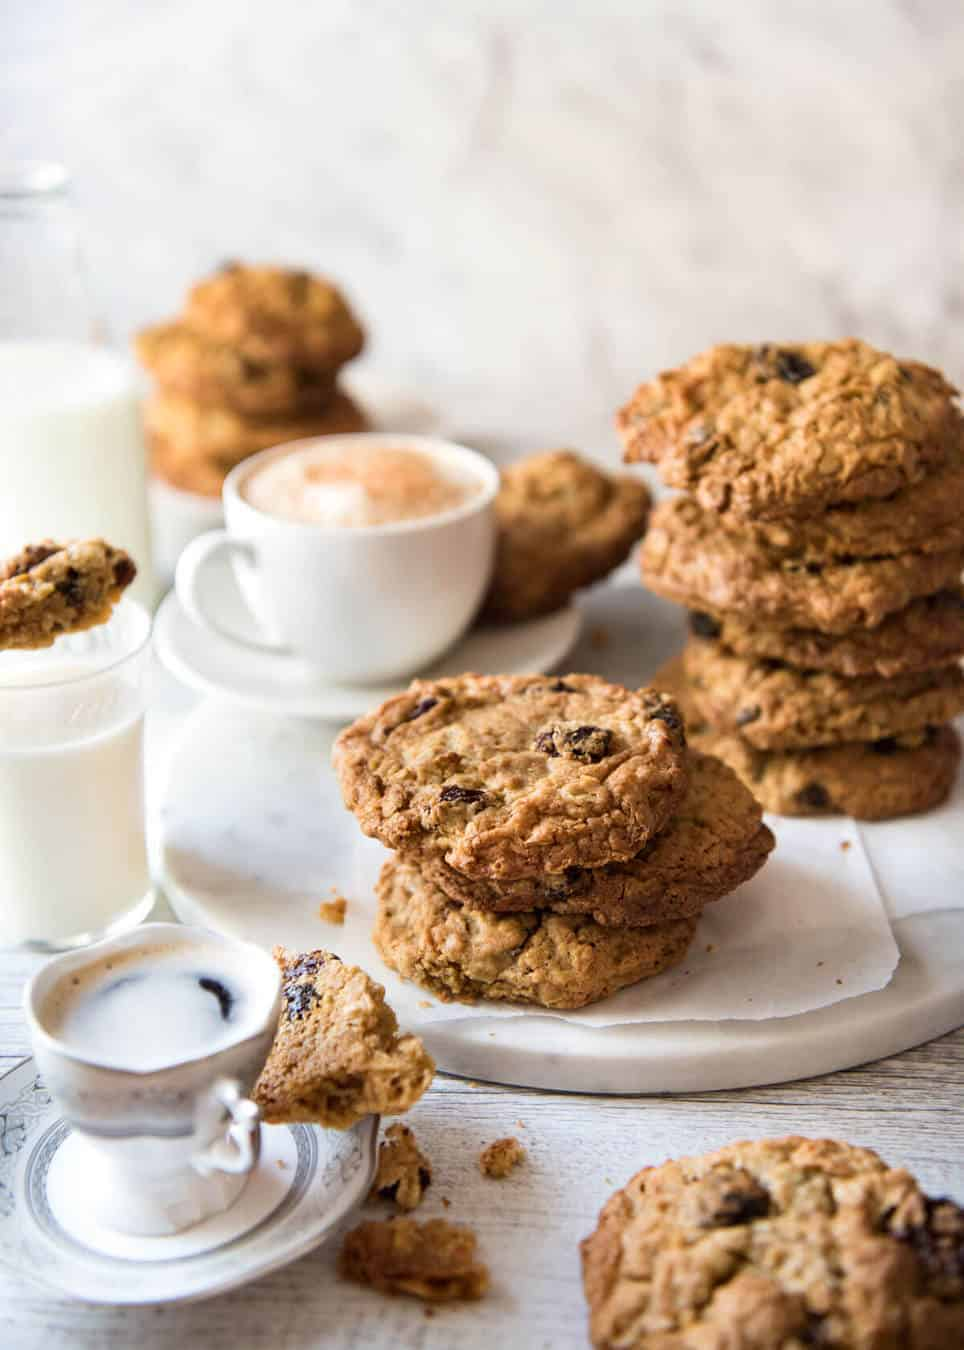 Oatmeal Raisin Cookie recipe - for perfect big, soft, moist, CHEWY Oatmeal Raisin Cookies! www.recipetineats.com